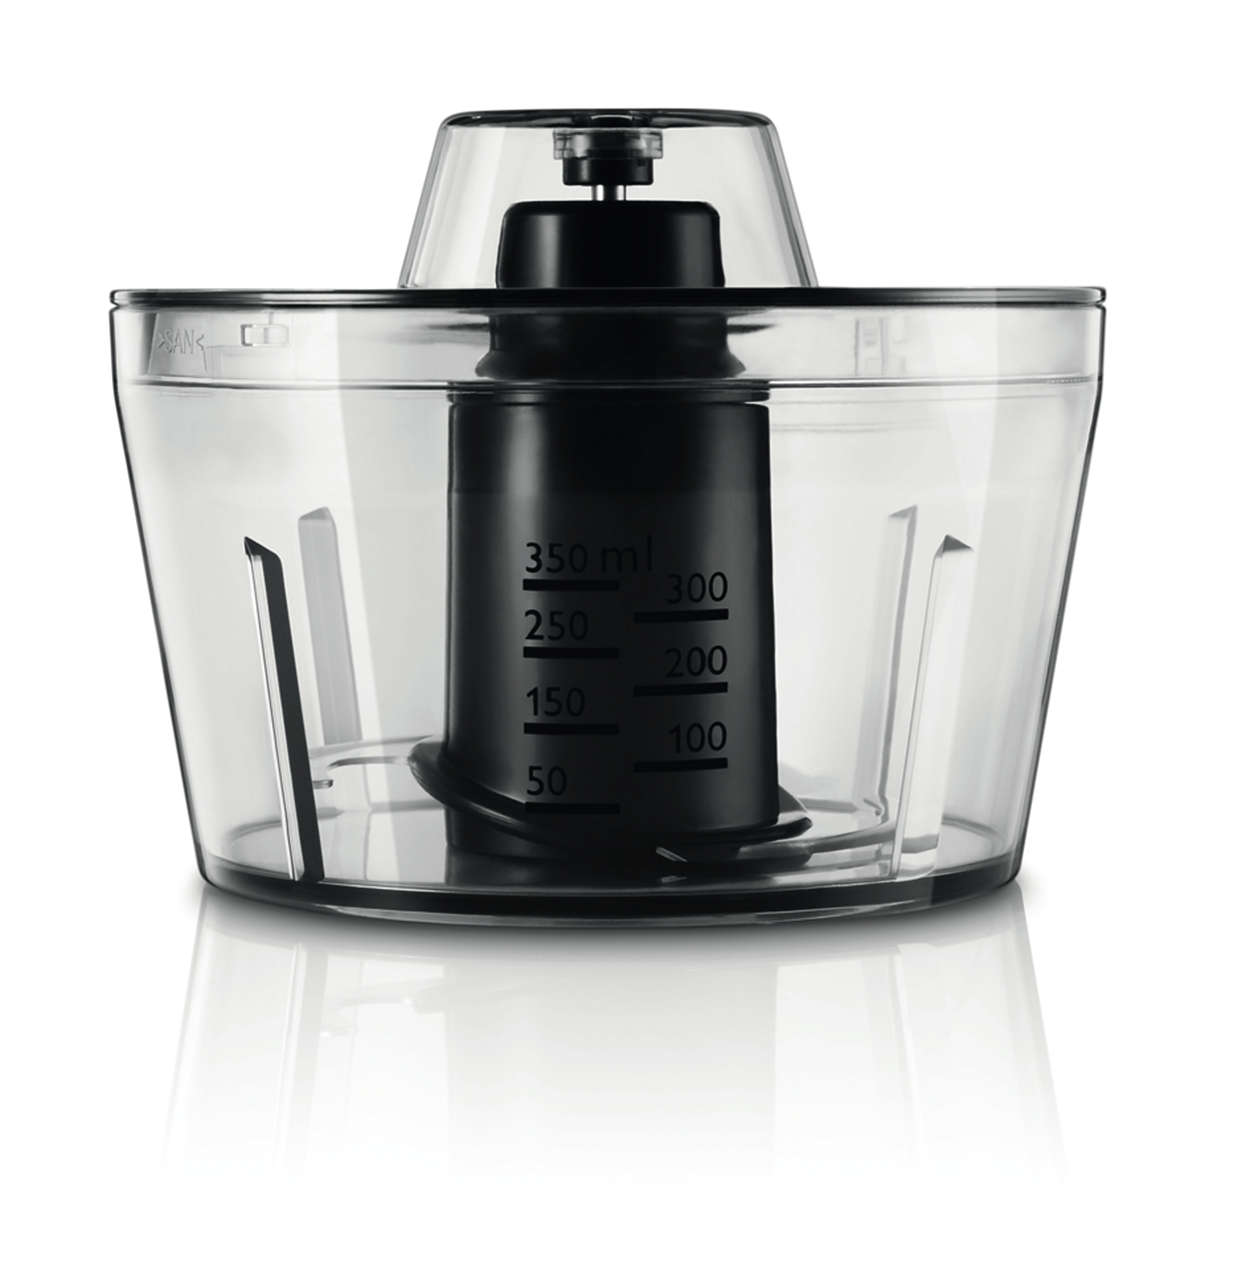 Avance Collection Accessorio per robot da cucina HR7994/90 | Philips